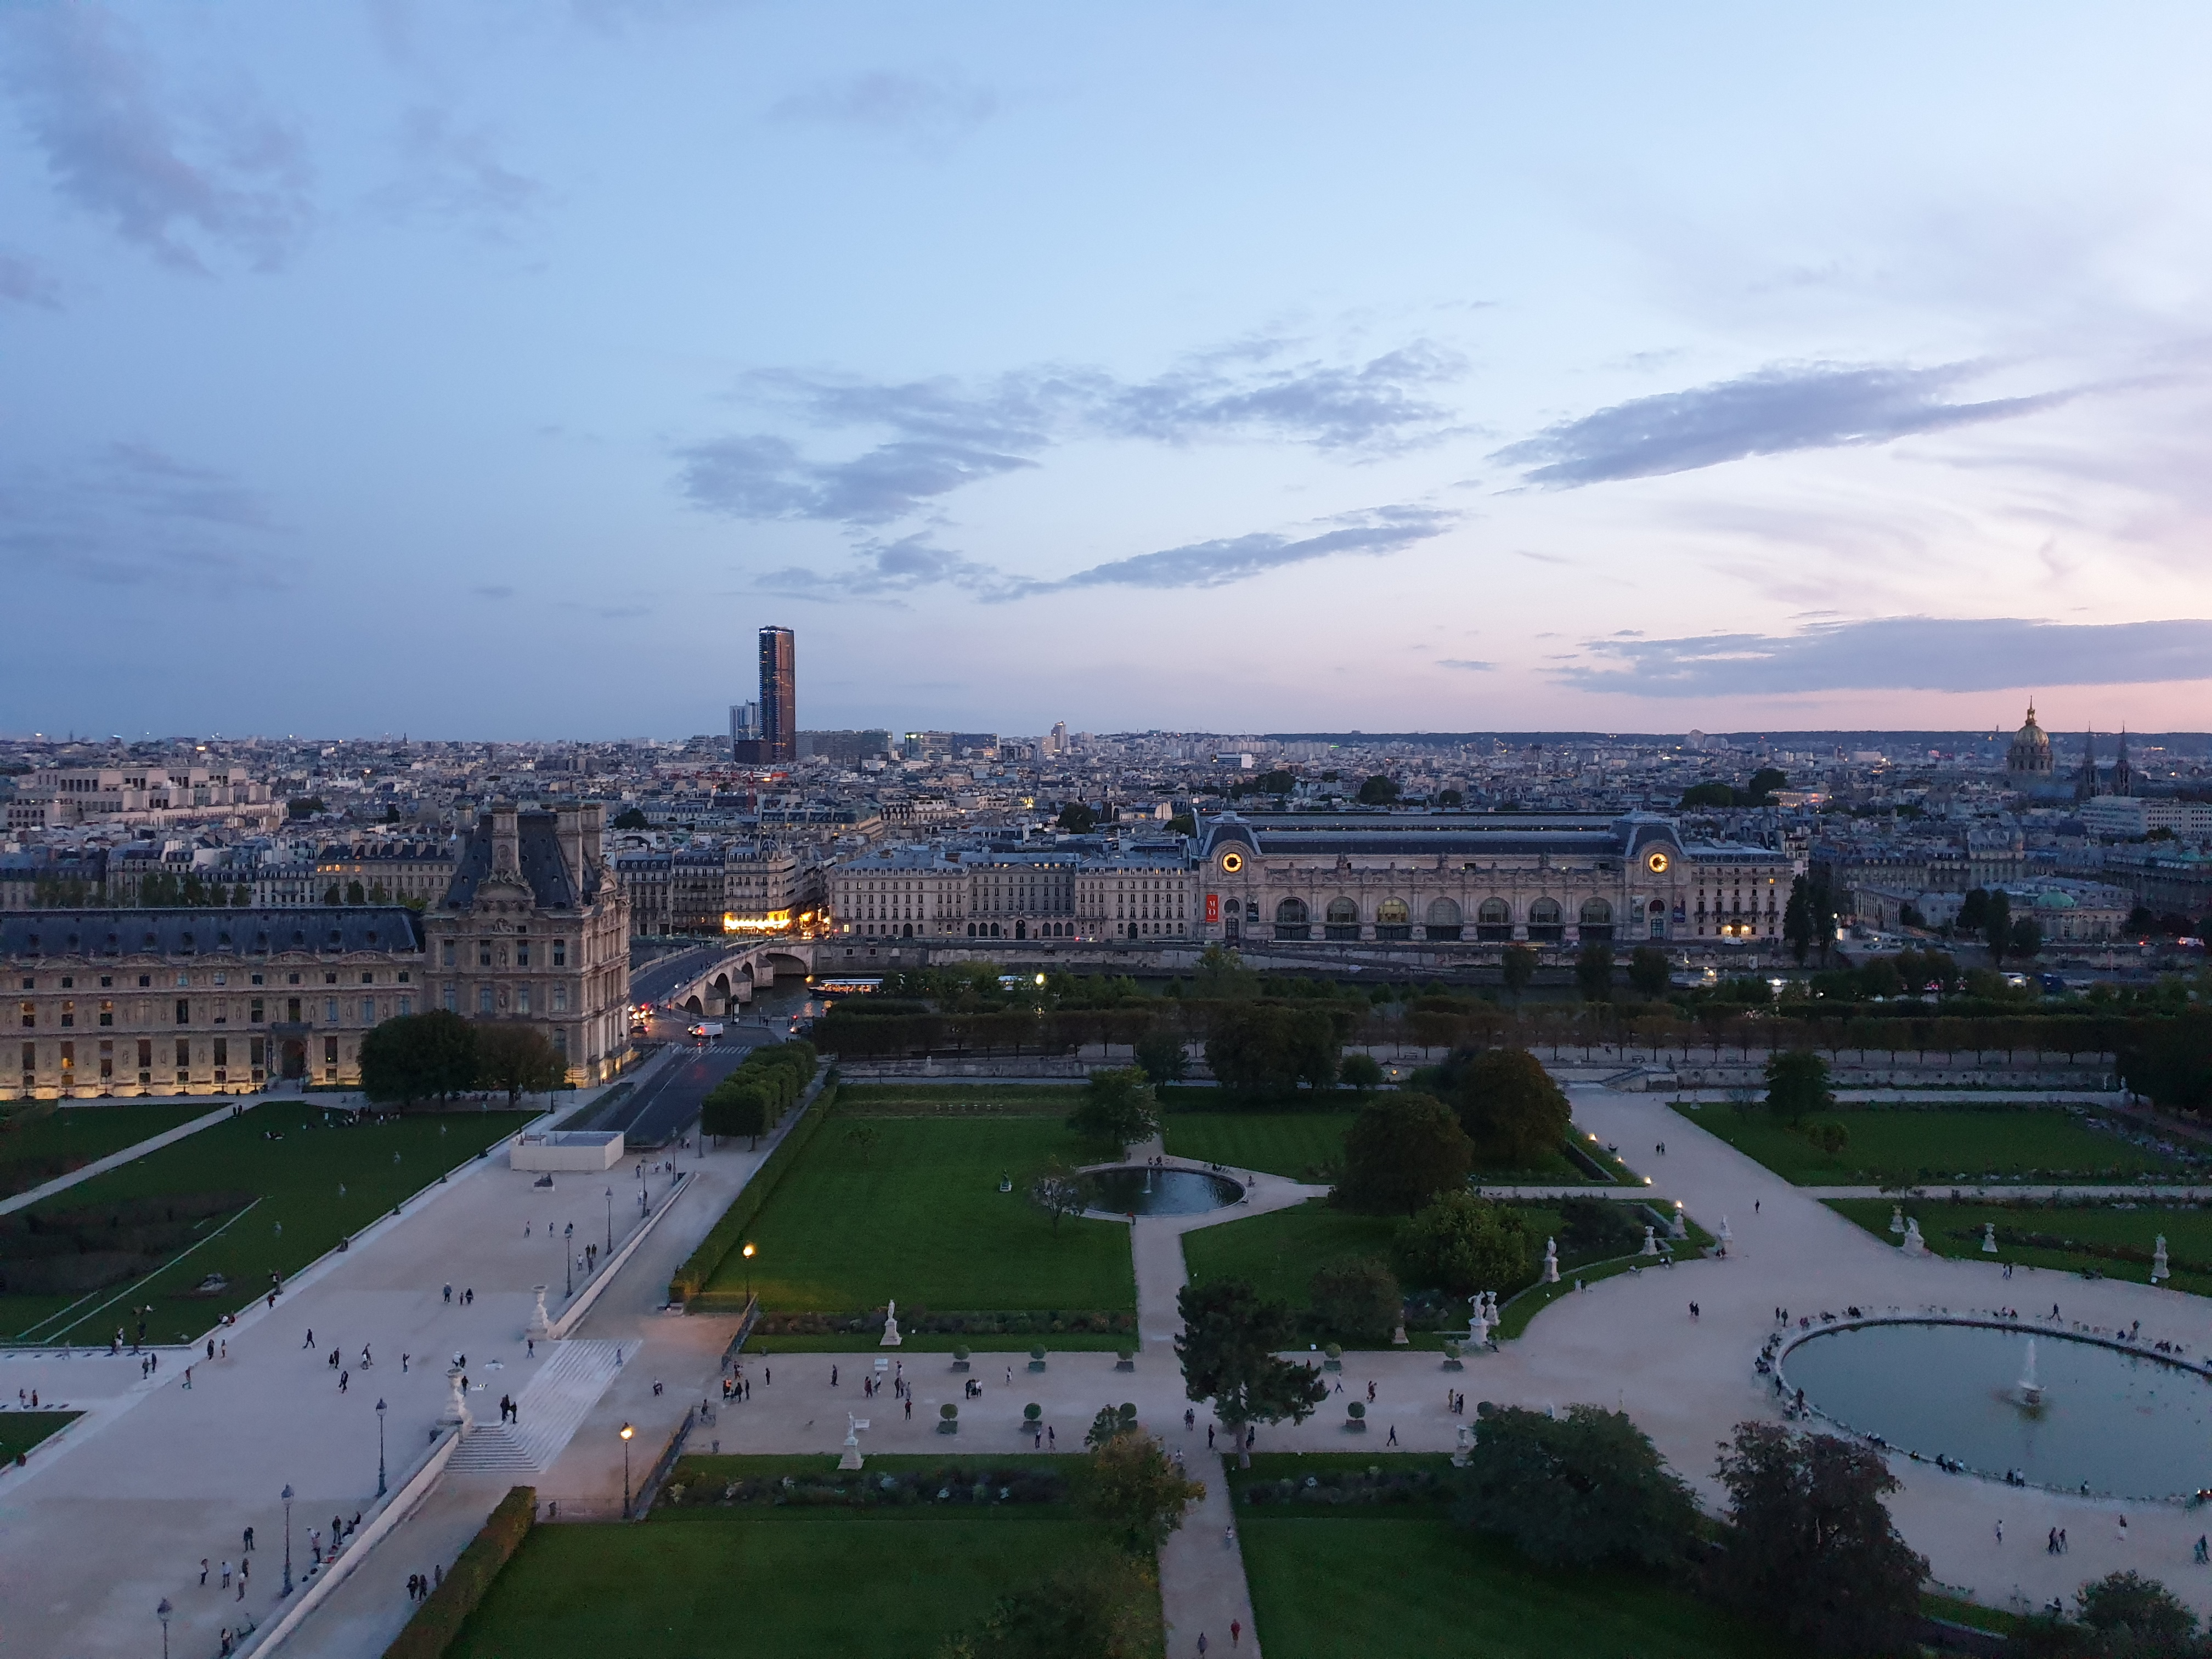 South view of Paris from the Tuileries Garden - 2019-08-19.jpg